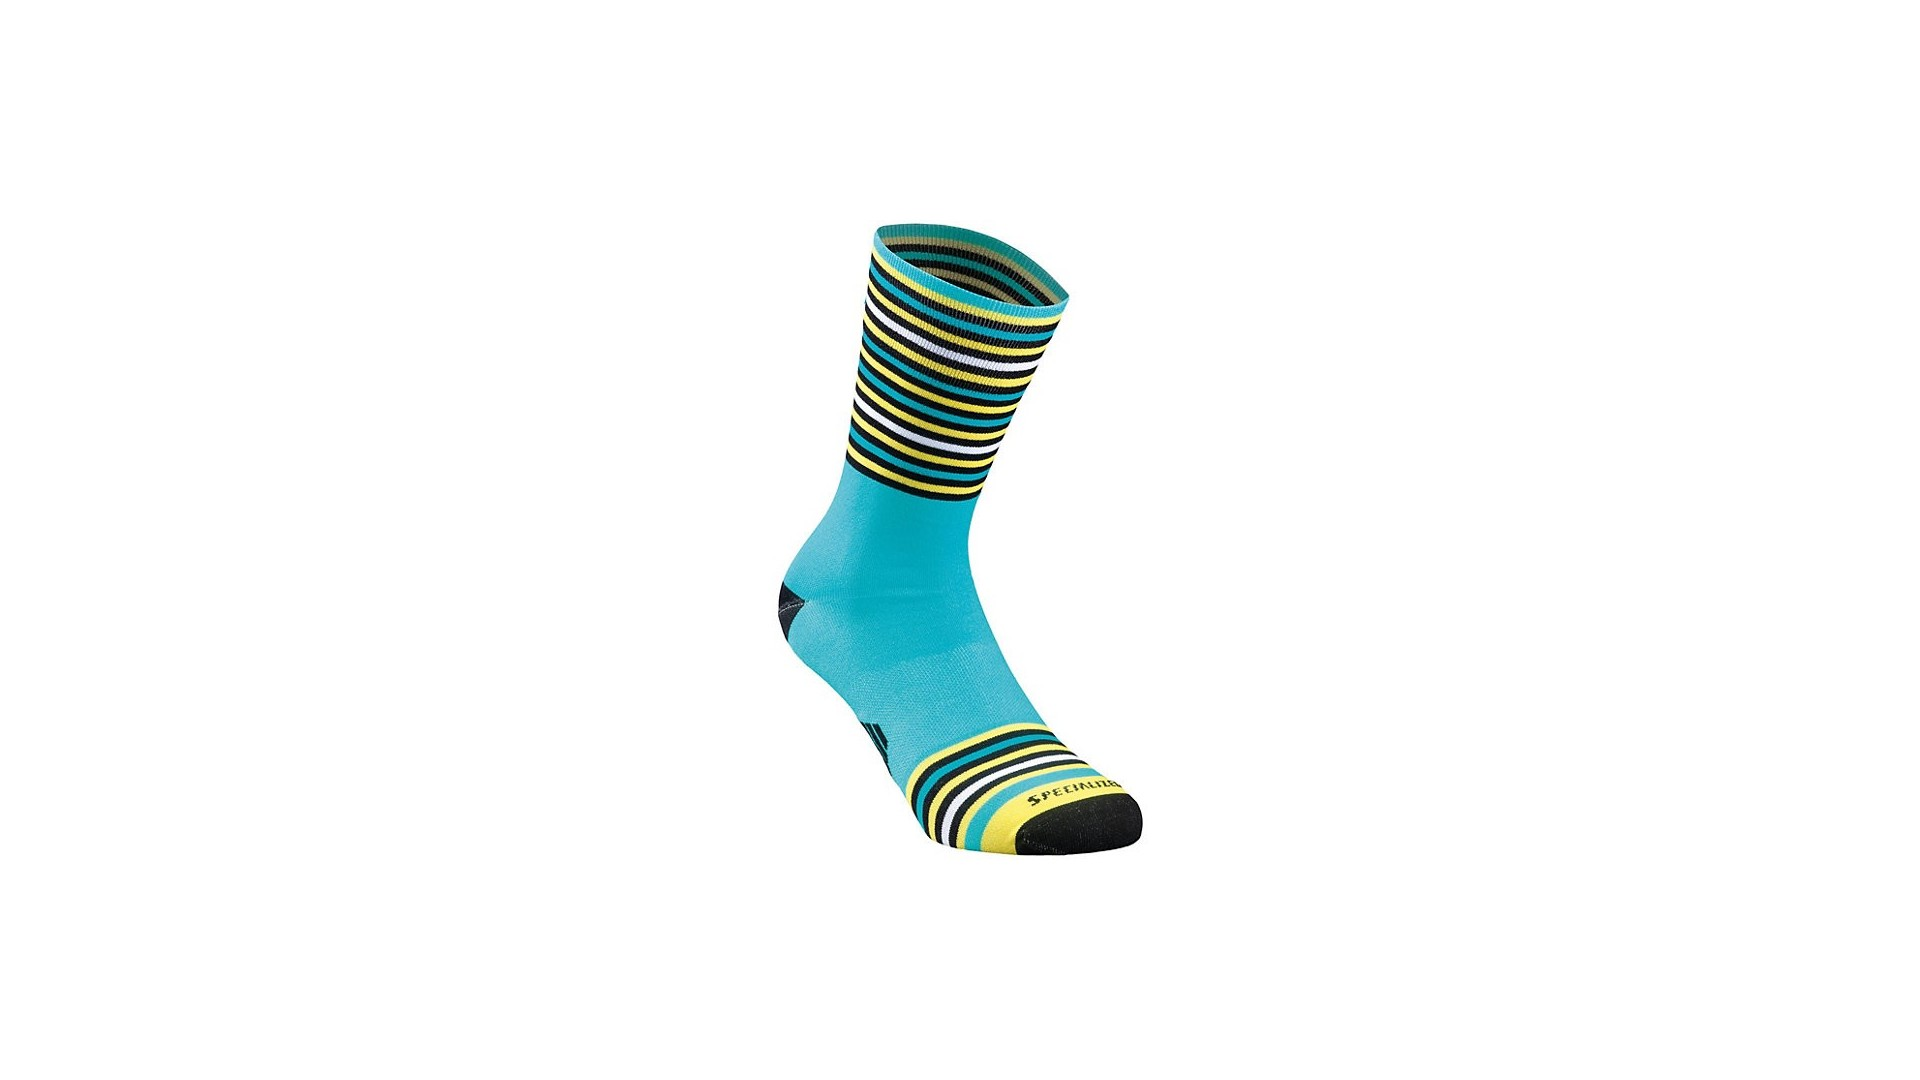 Full Stripe Calcetines Verano Specialized Nice Blue/Black/Yellow 1 IBKBike.es